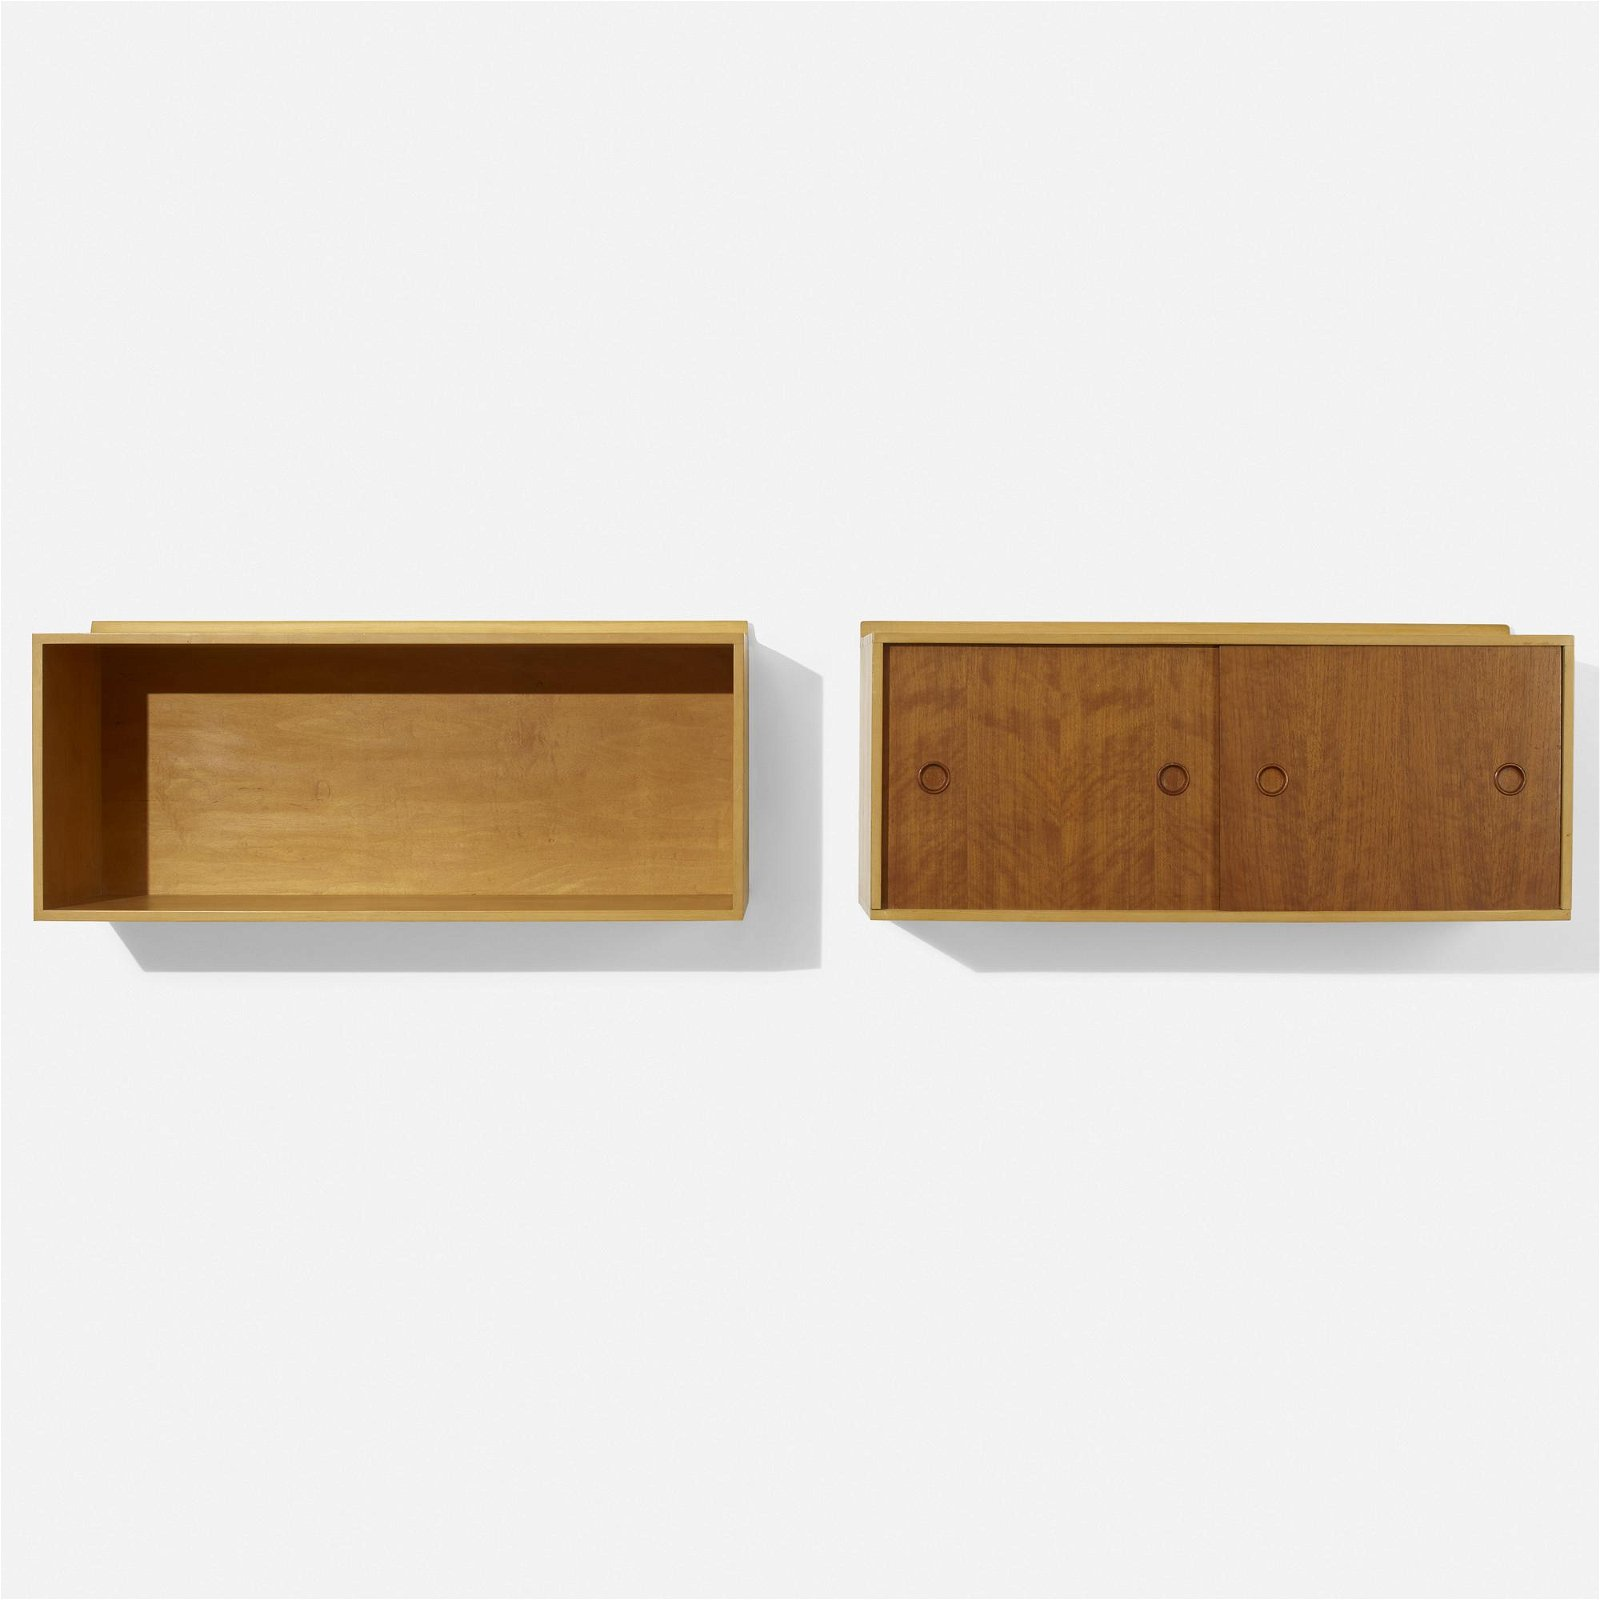 Finn Juhl, wall-mounted cabinets  set of two